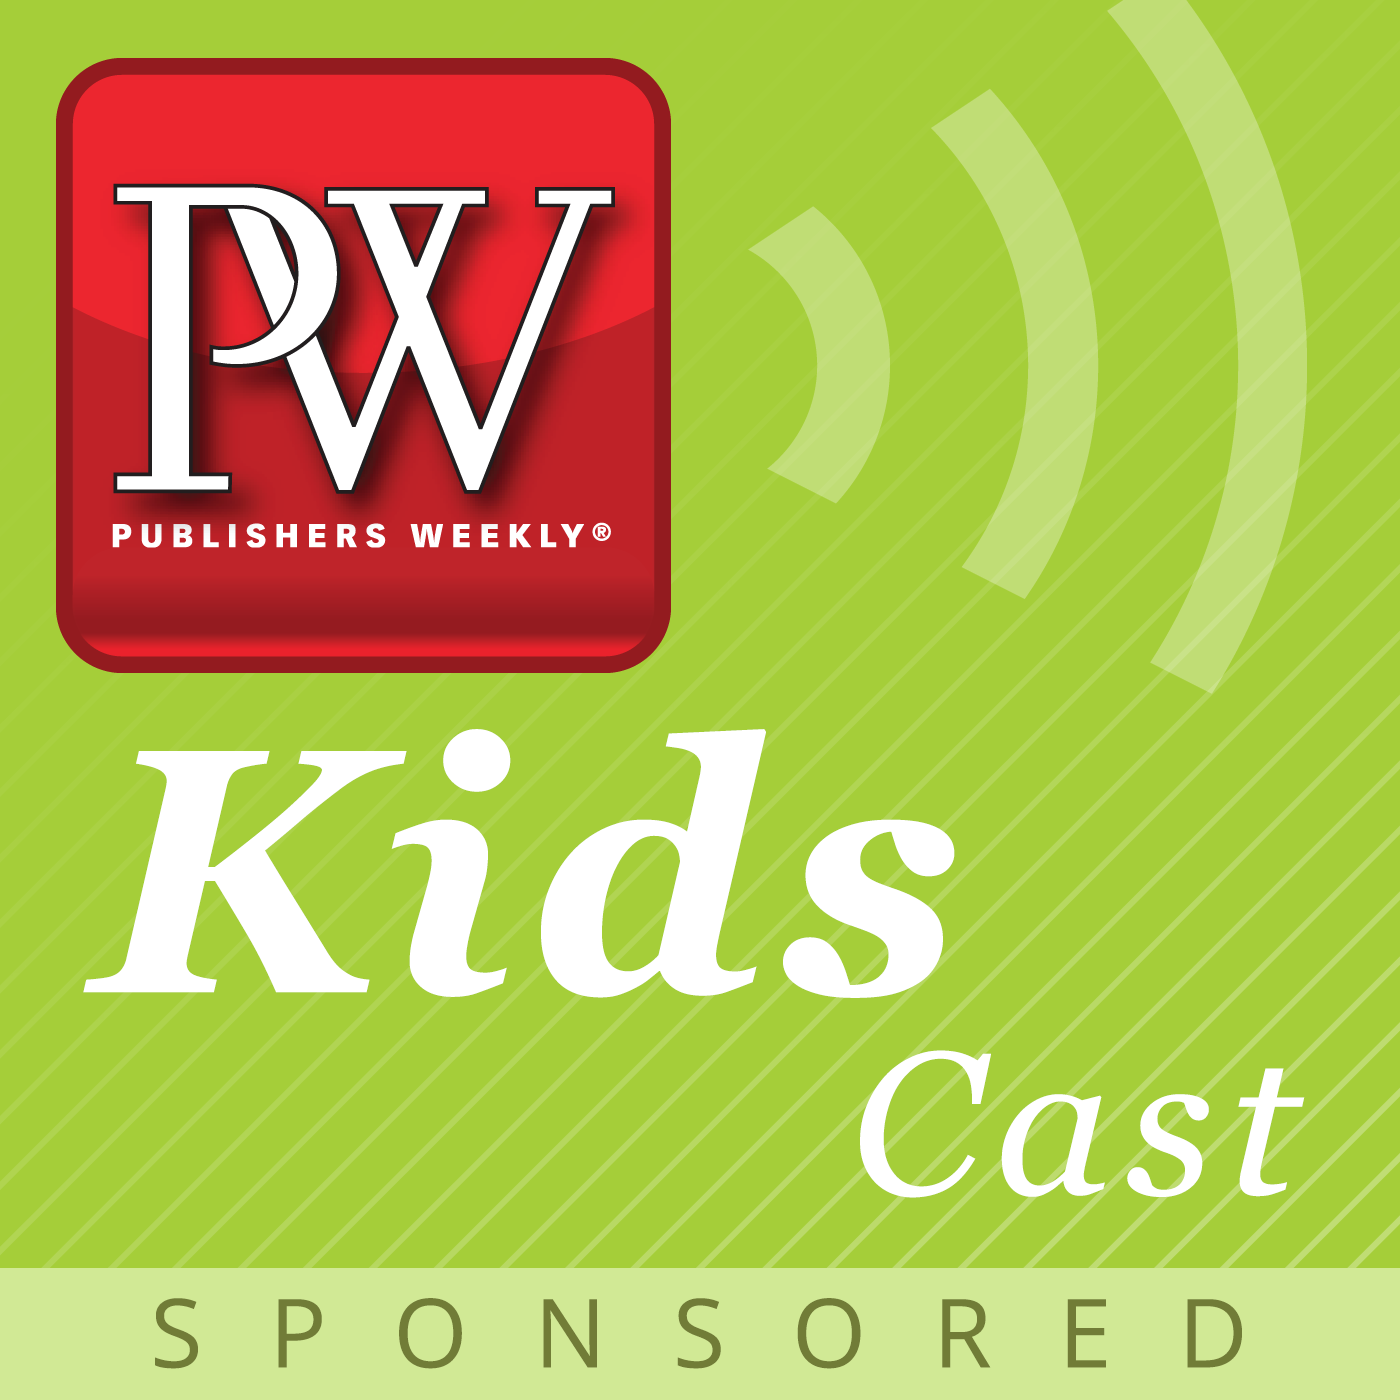 PW KidsCast: A Conversation with Jonathan Stutzman and Heather Fox